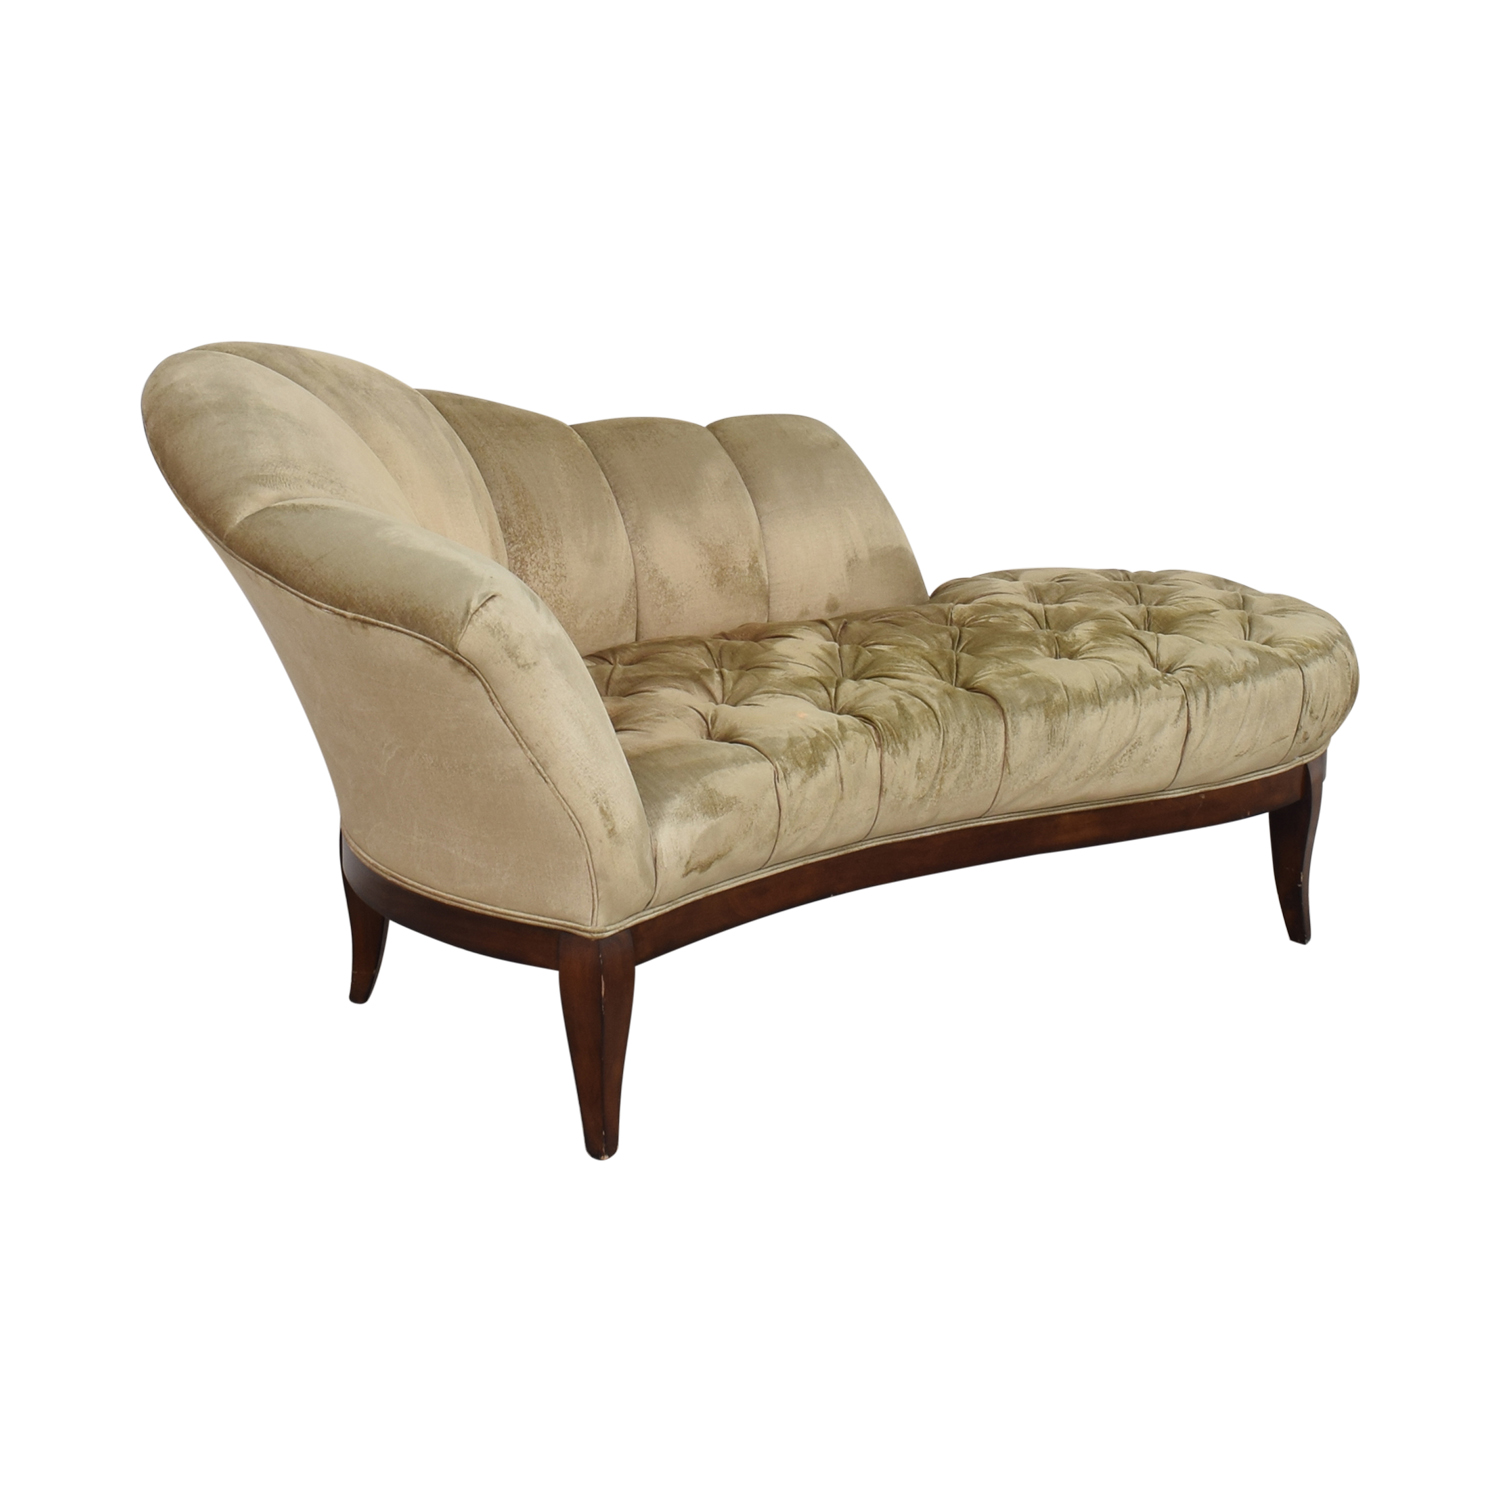 Schnadig Schnadig Pleated Tufted Traditional Chaise nyc